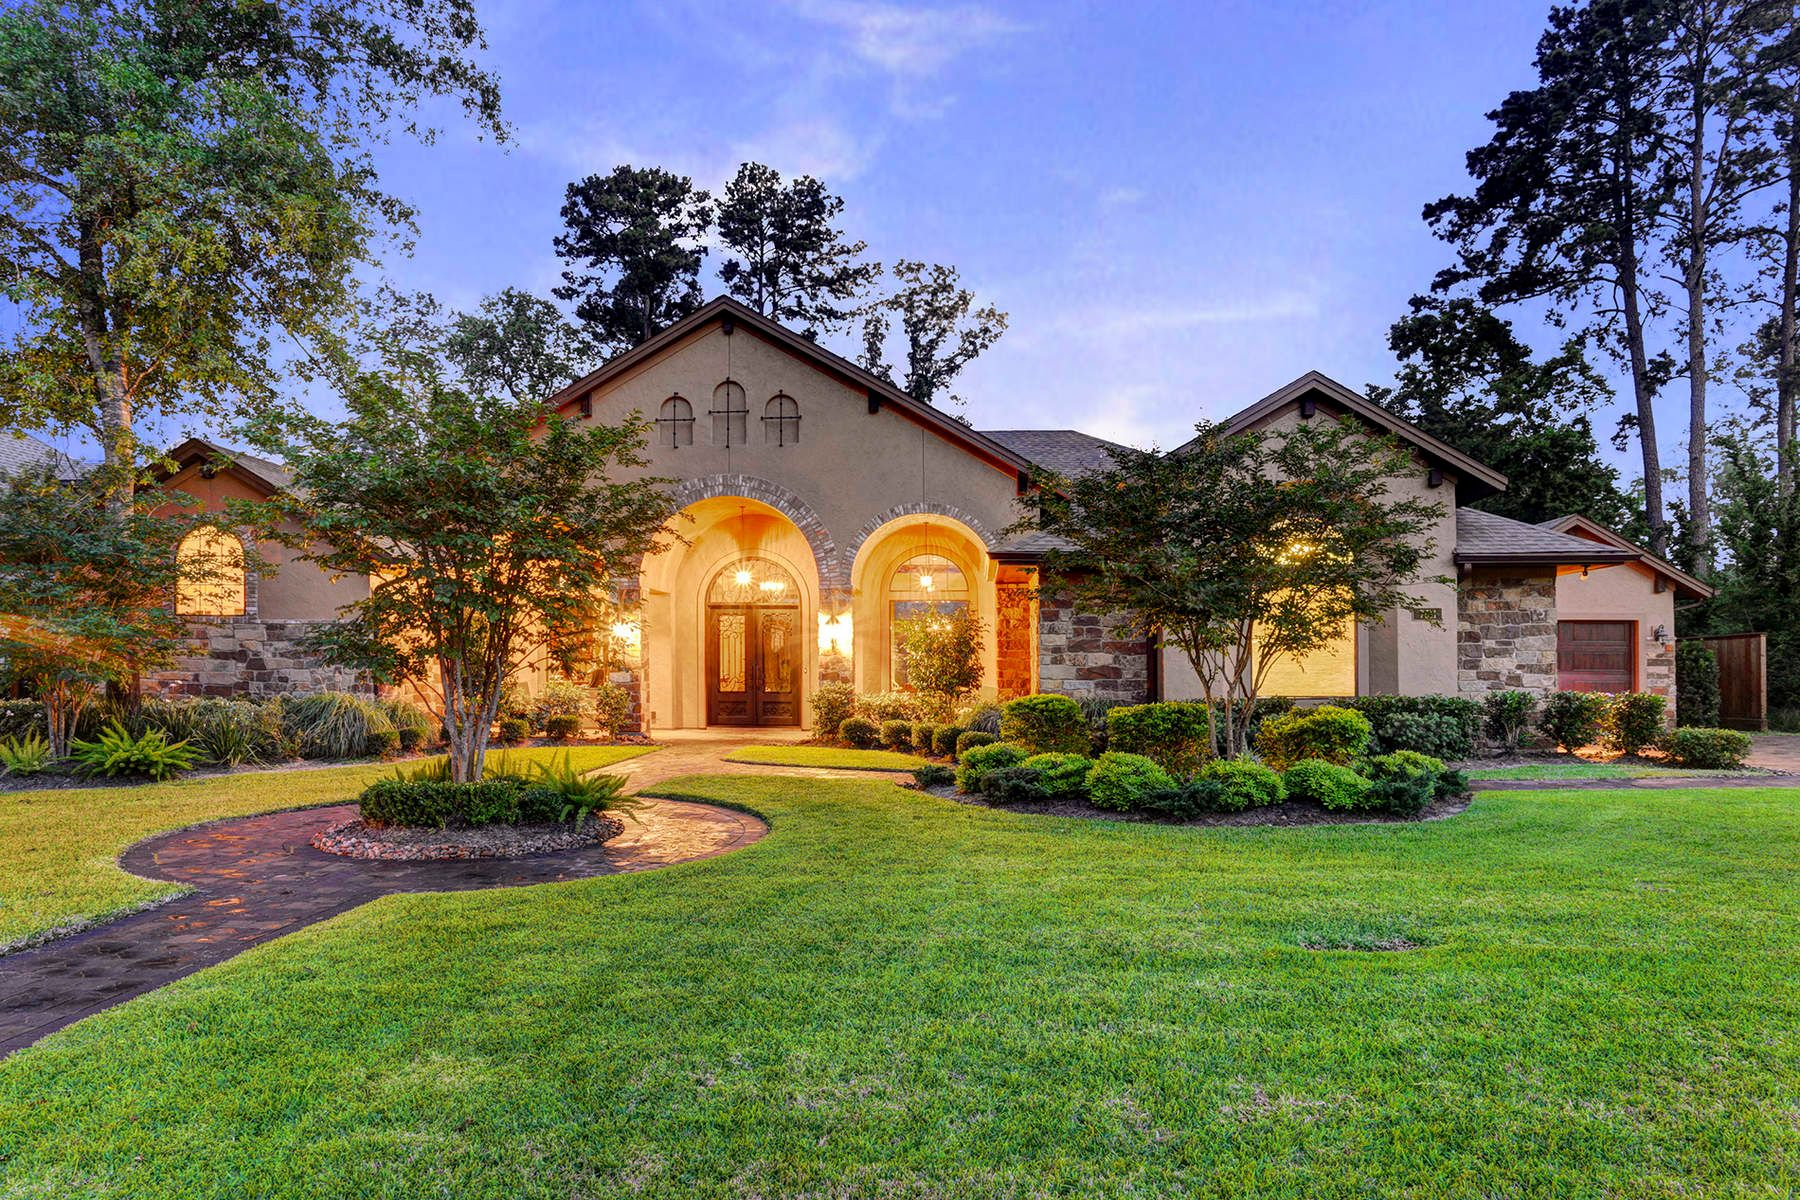 Single Family Home for Sale at 7611 Morgans Pond Ct 7611 Morgans Pond Ct Spring, Texas 77389 United States